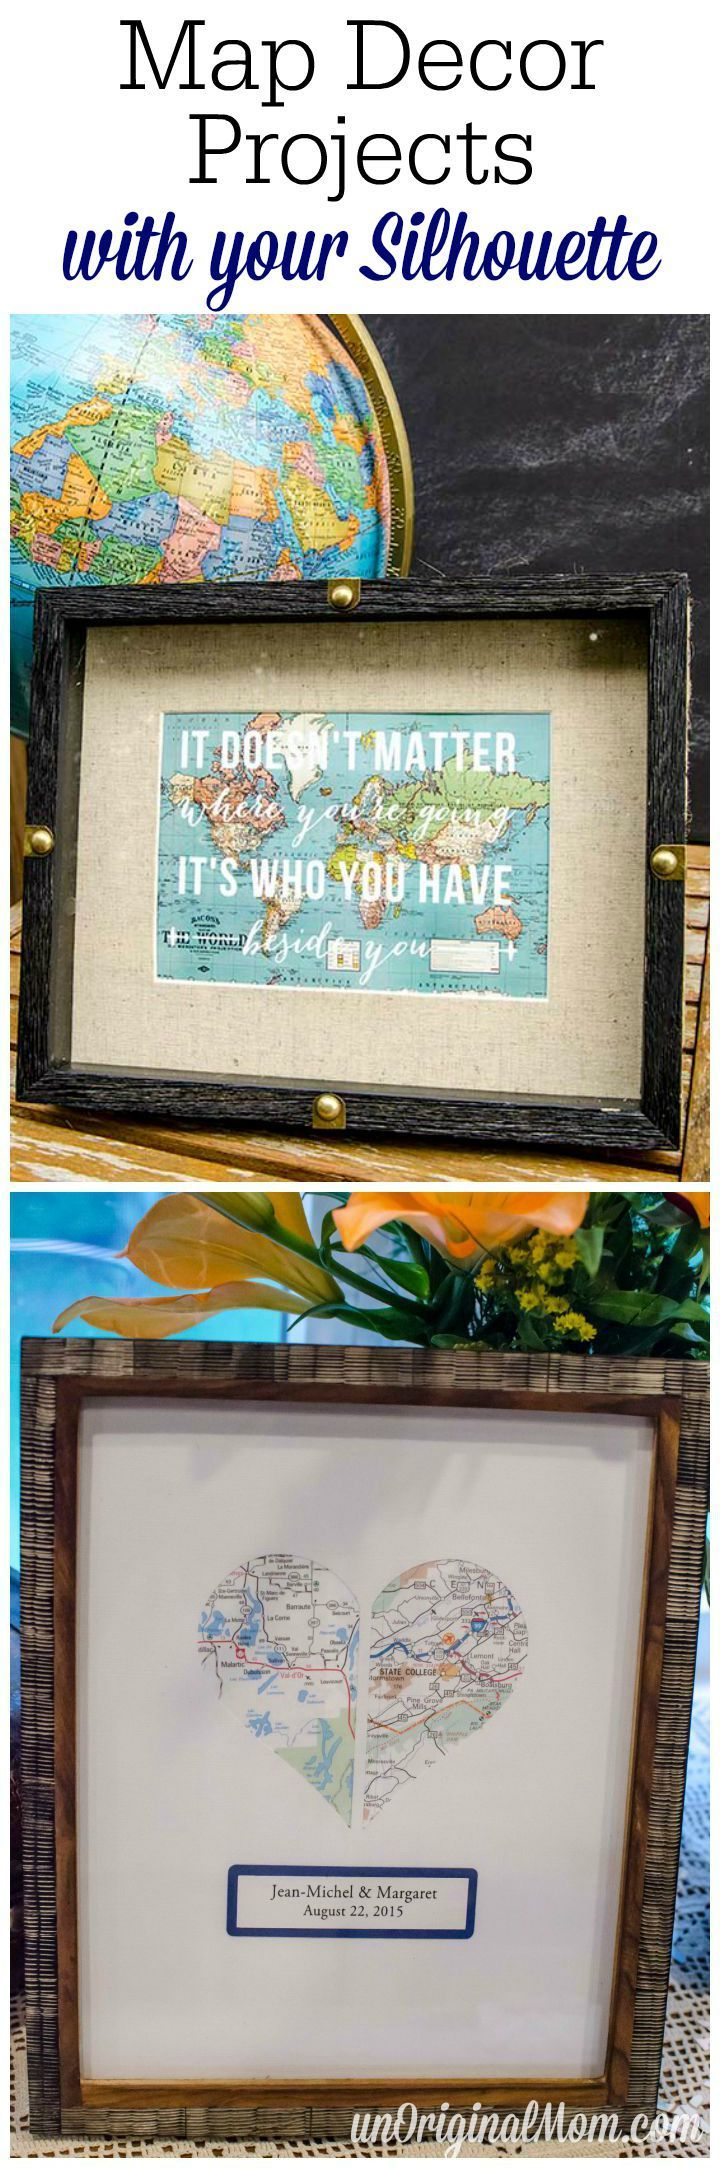 Two travel themed decor ideas - would make great gifts for a shower or wedding!